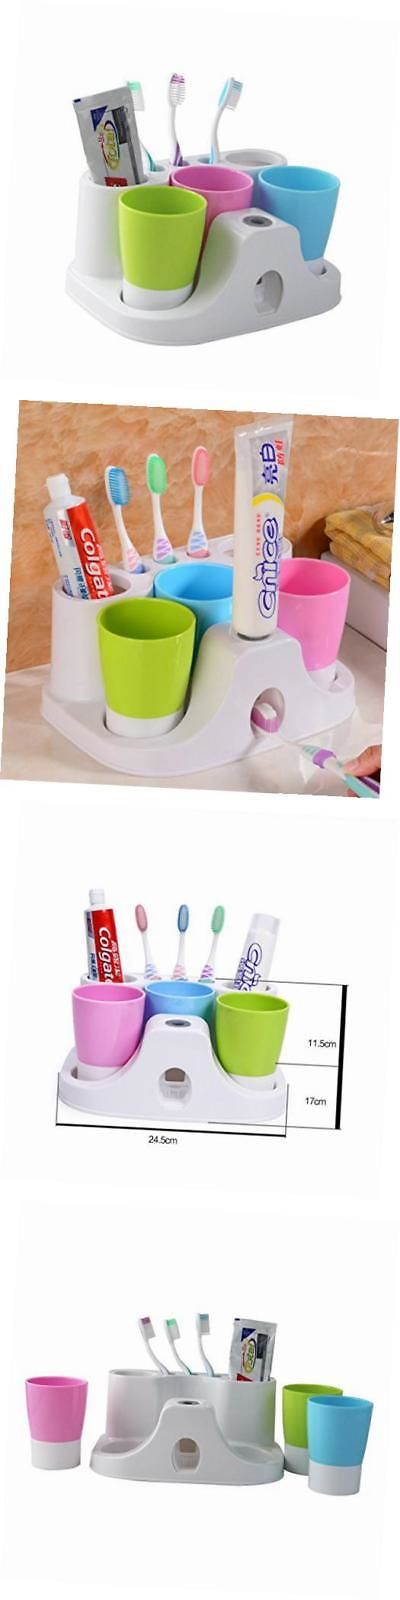 Toothbrush Holders 25453: Kids Toothbrush Holder Set Toothpaste Dispenser With 3 Tooth Mugs, Stand -> BUY IT NOW ONLY: $40.3 on eBay!